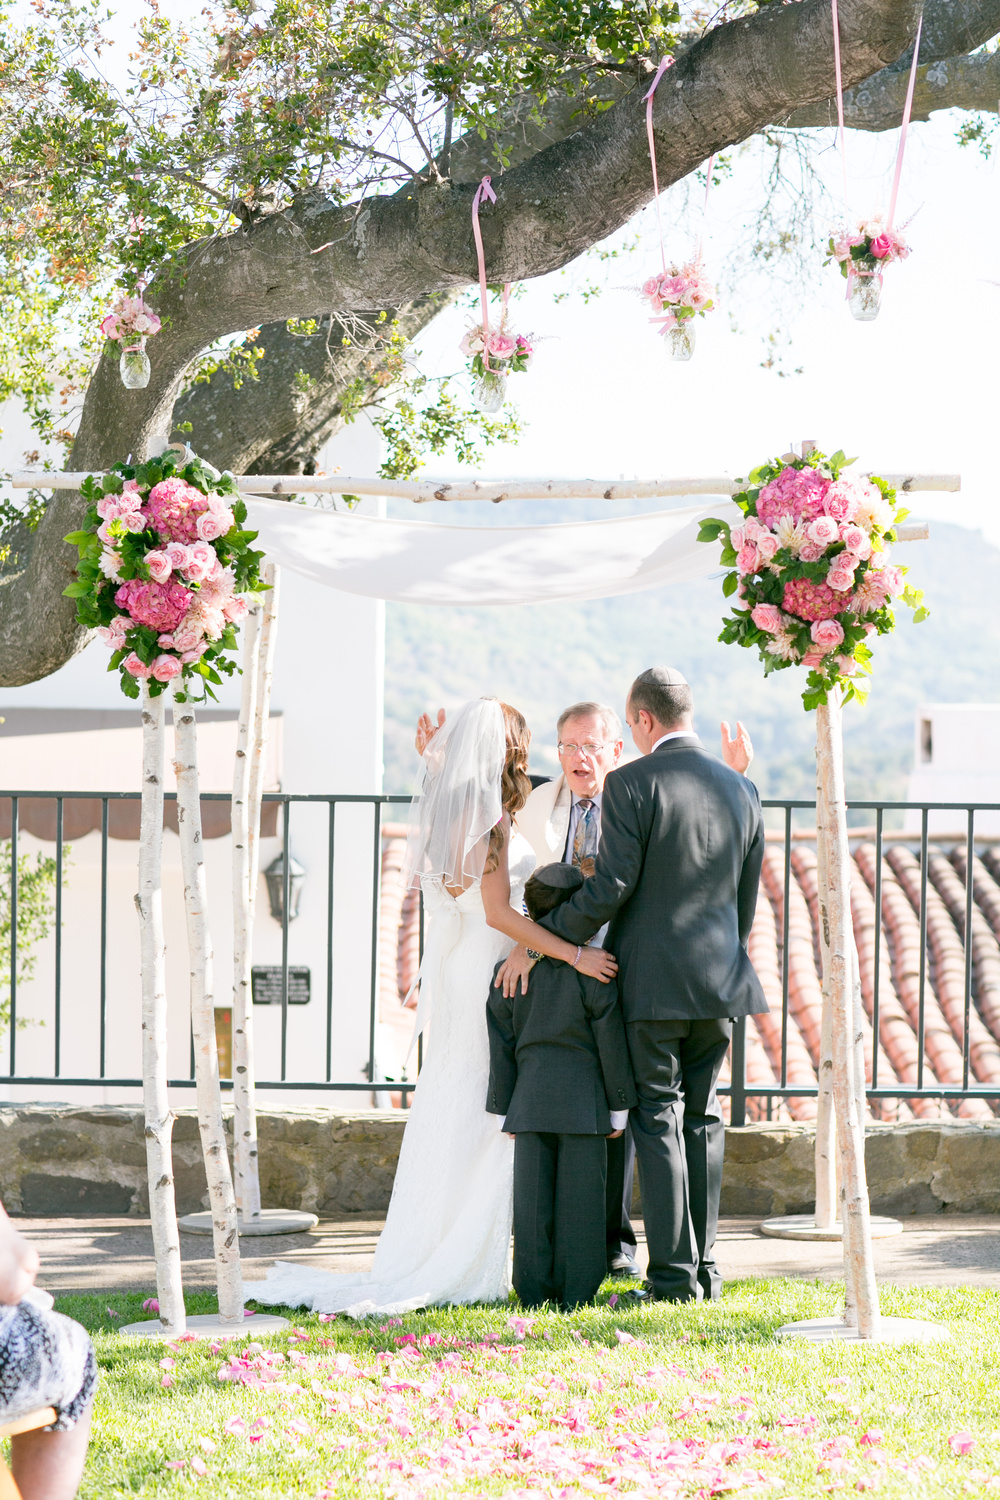 It was very important to this couple that the groom's son be an integral part of their day and I think this photo says it all.  I strongly believe that a beautiful ceremony is achieved by making sure what is important is front and center.  Photographer:  MiBelle   Florist:  Rock Rose   Venue:  Ojai Valley Inn & Spa